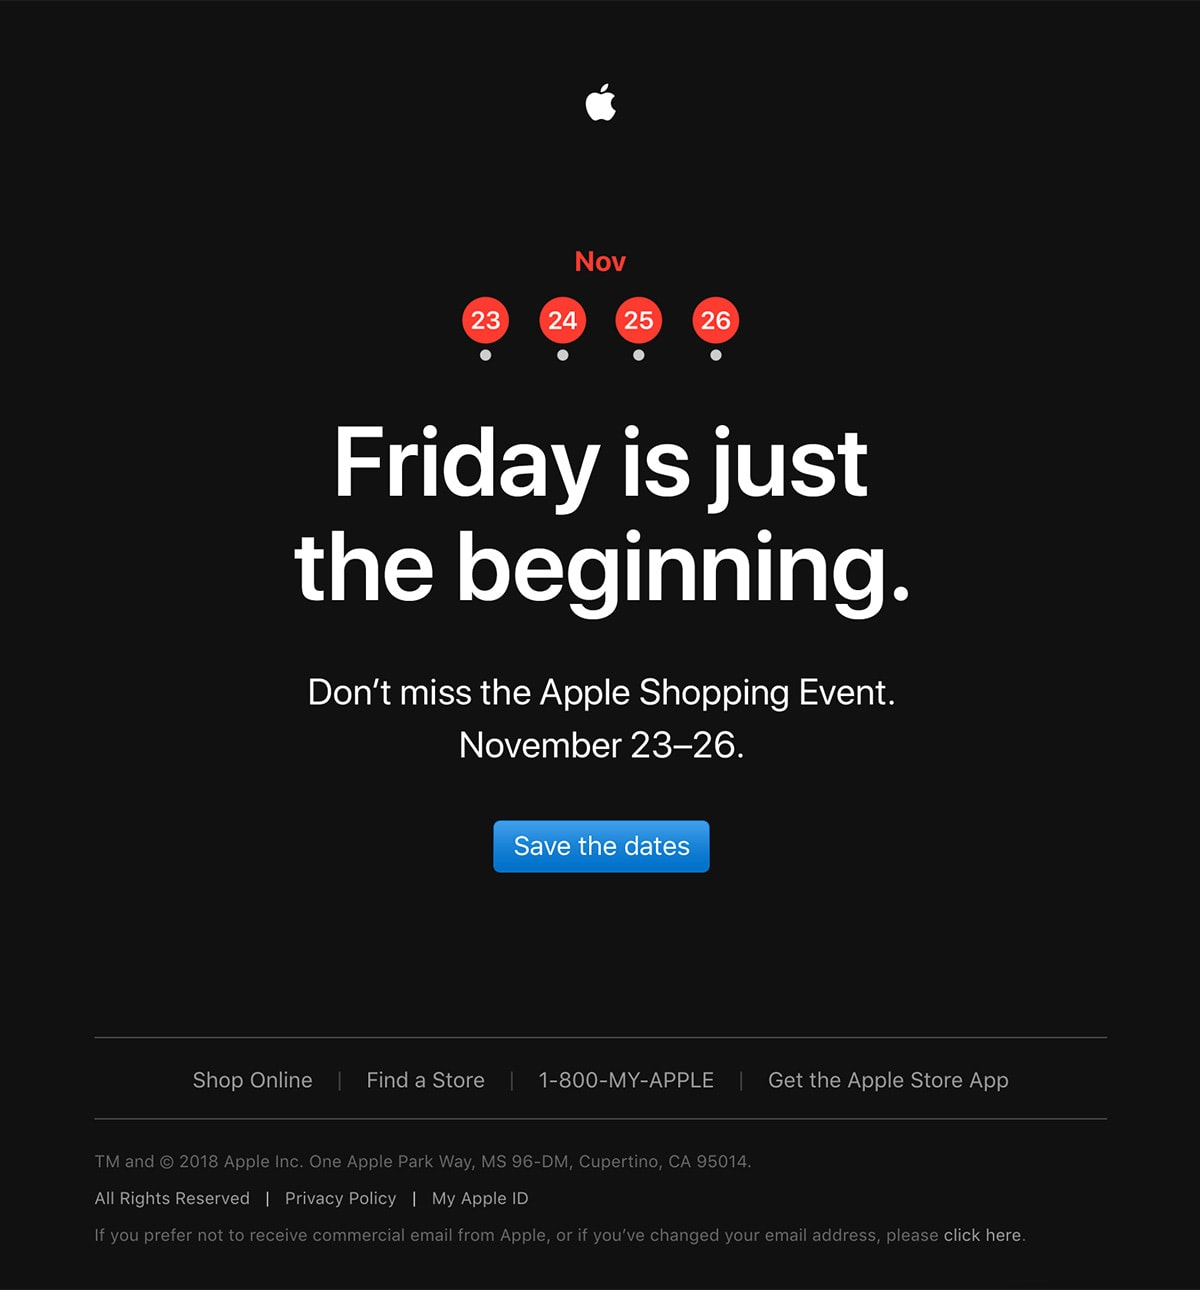 The Apple Shopping Event is almost here